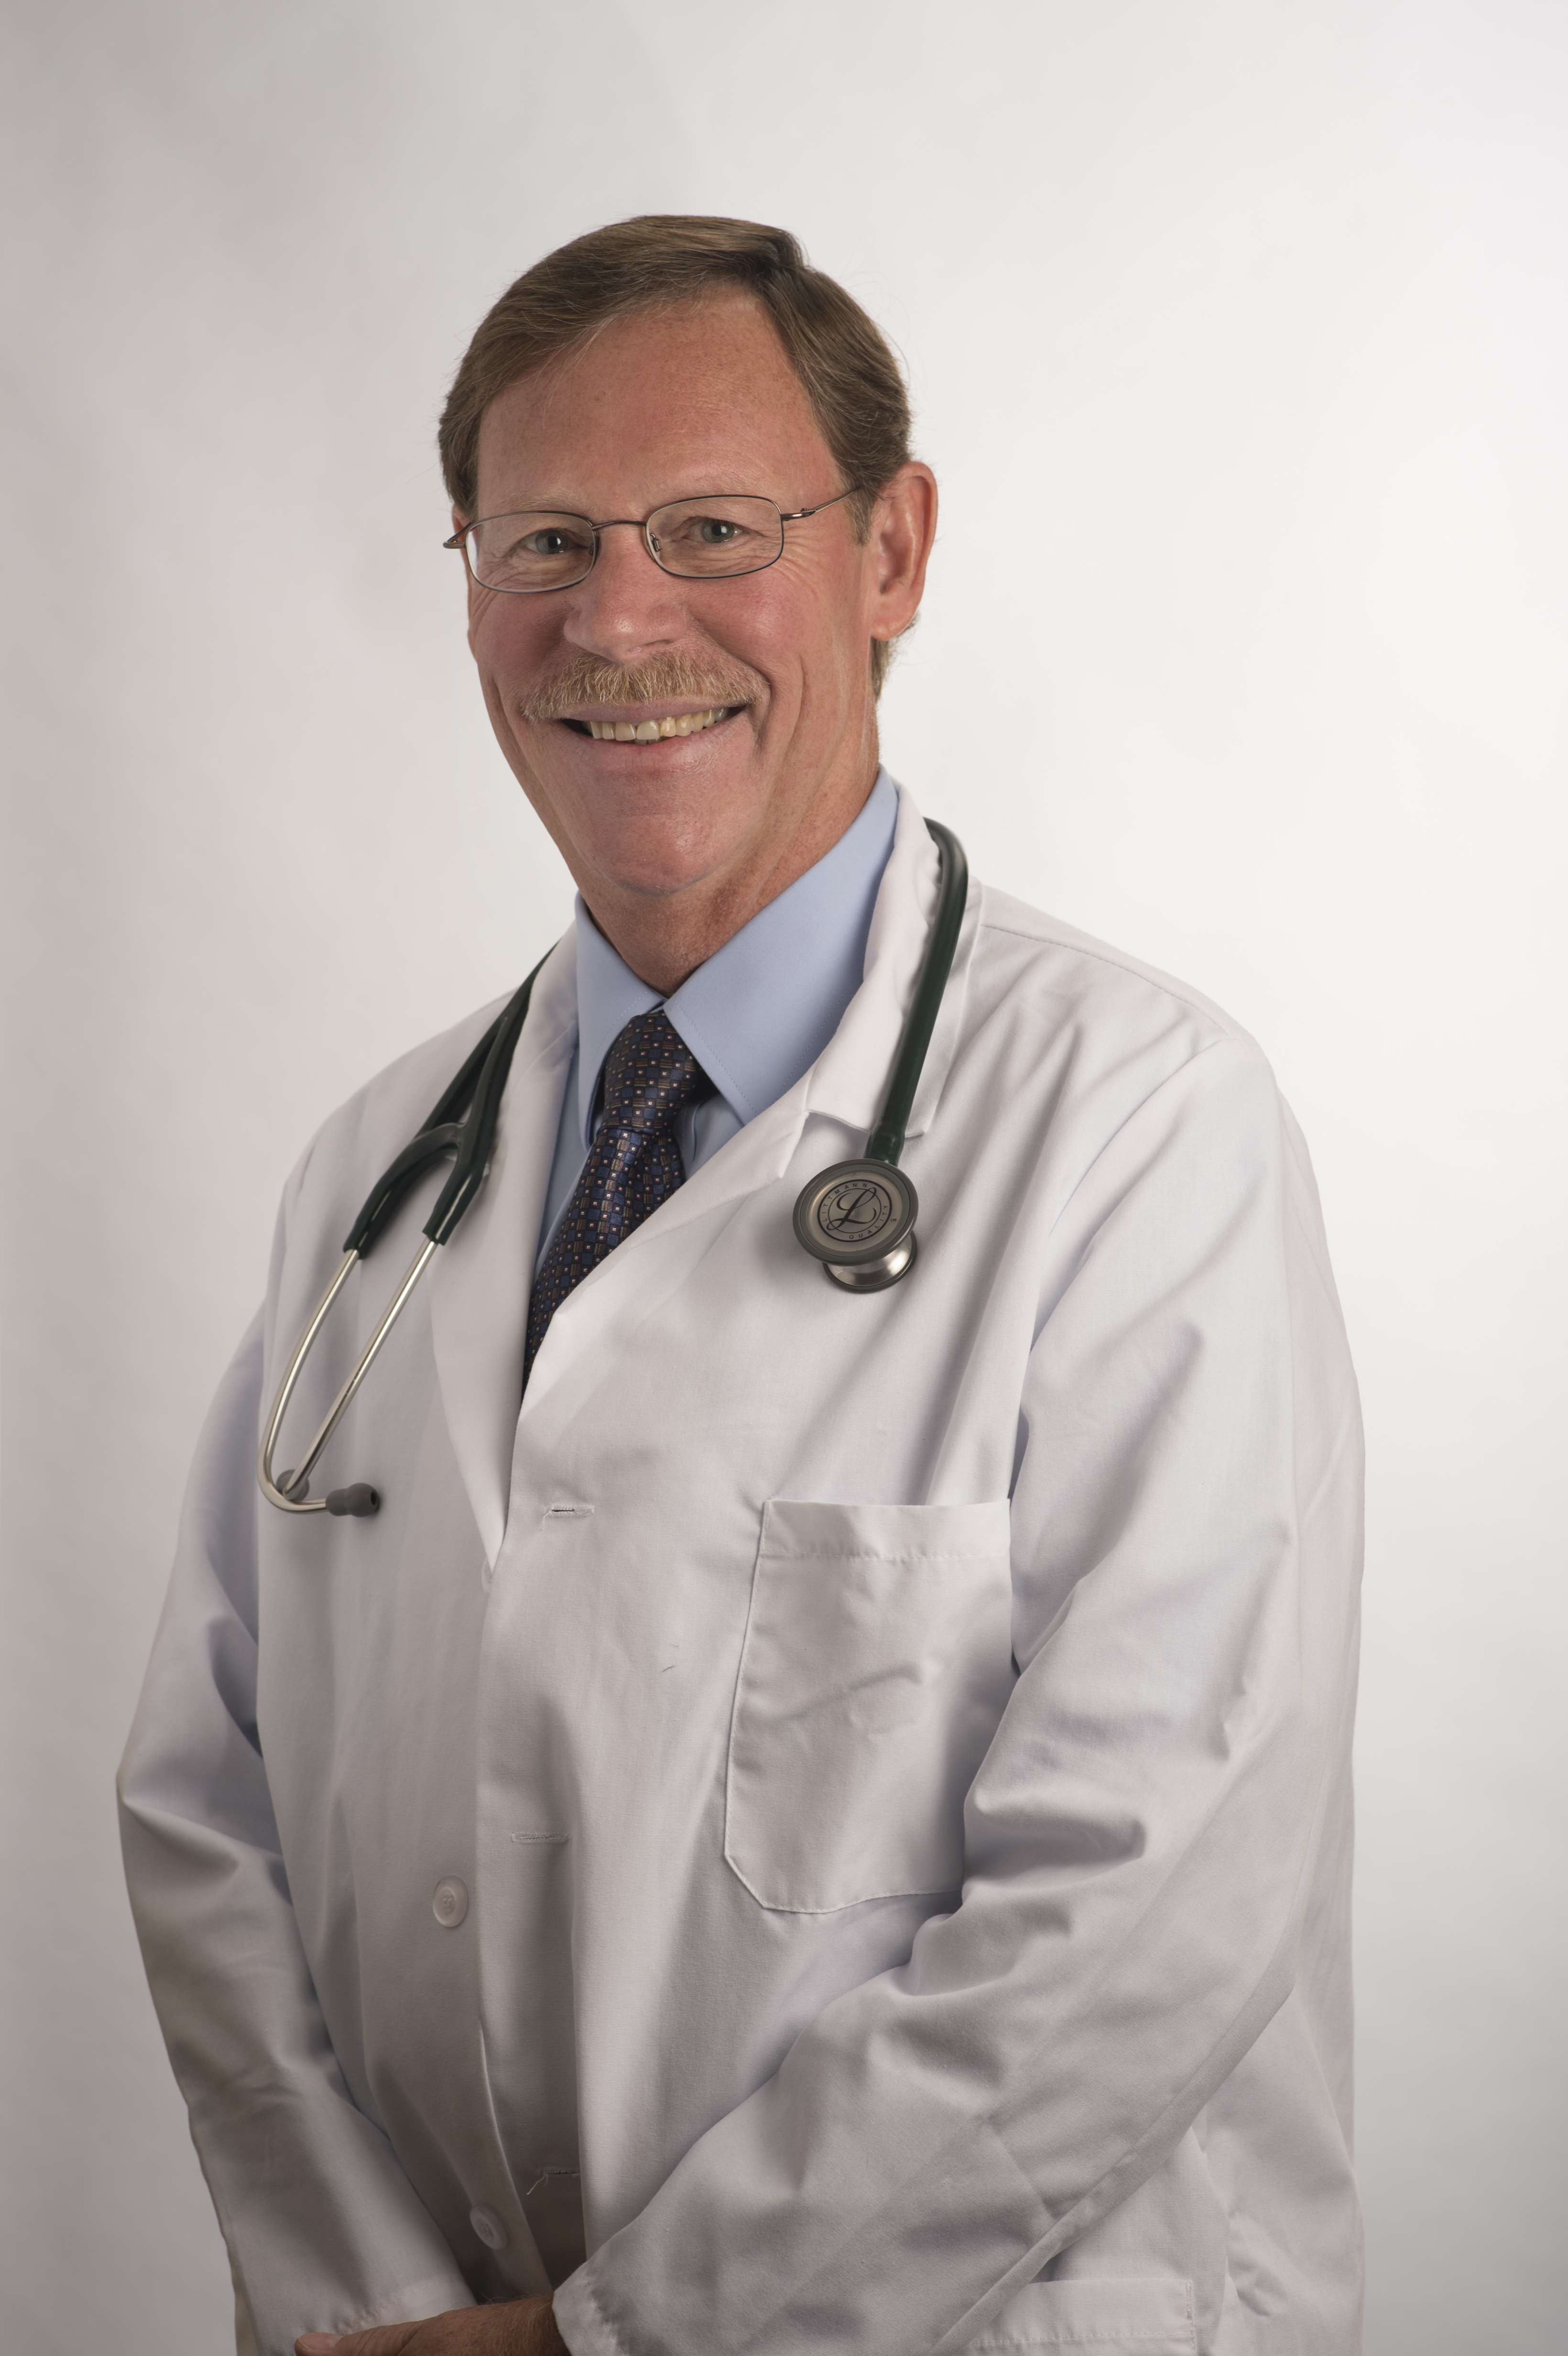 Kevin Peterson, MD